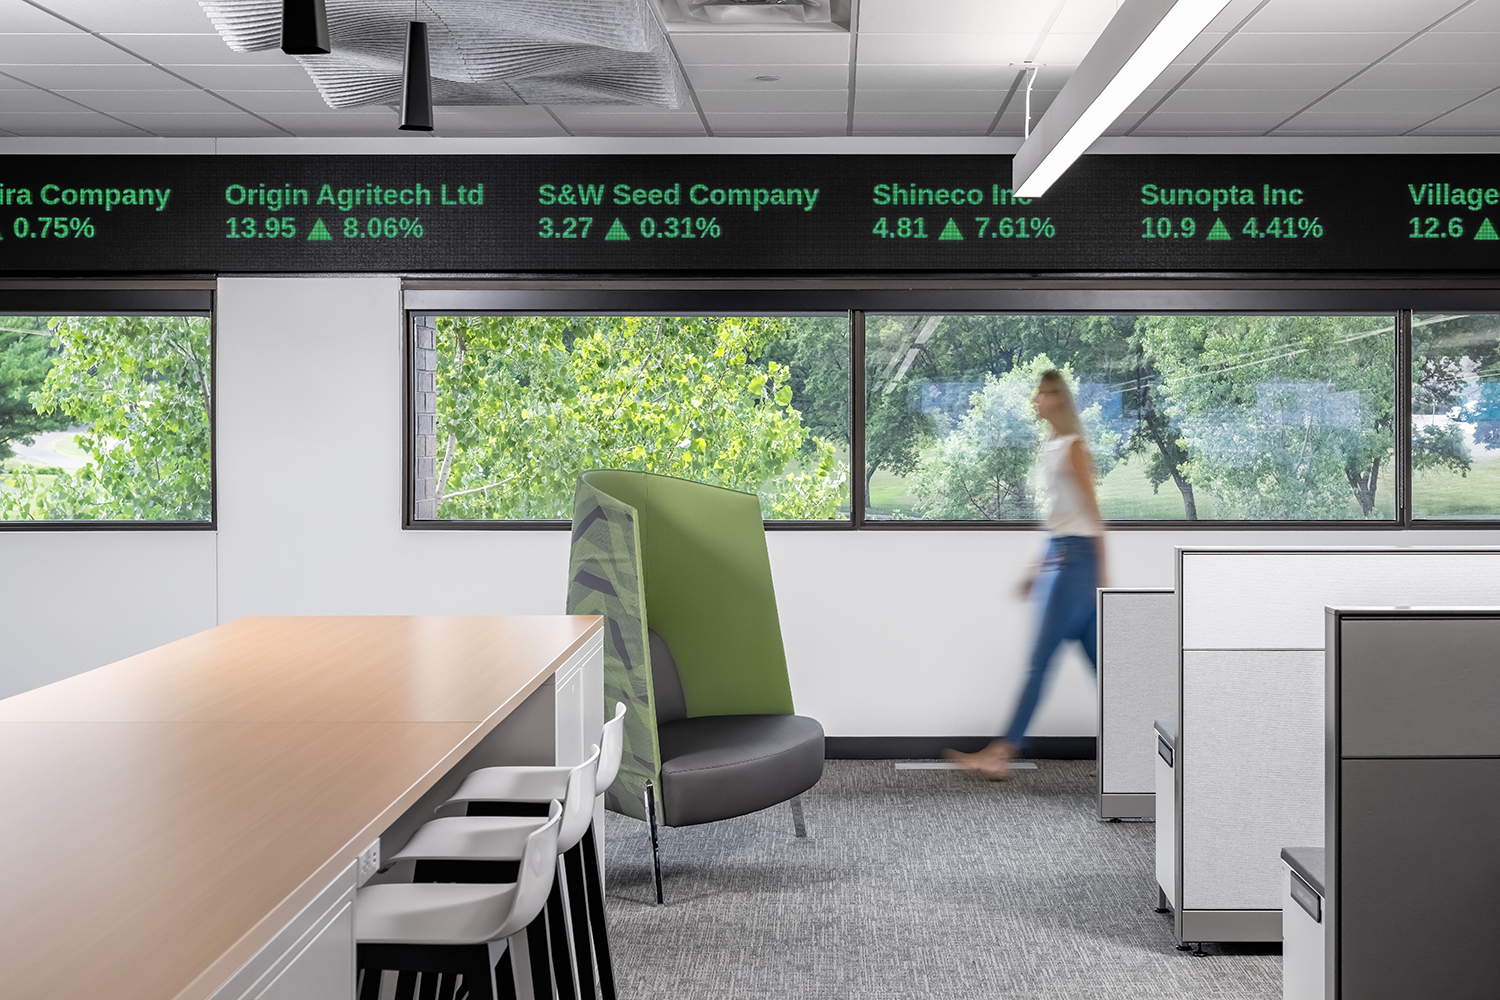 Office workspace with views to nature and trading floor digital panels at ceiling level.